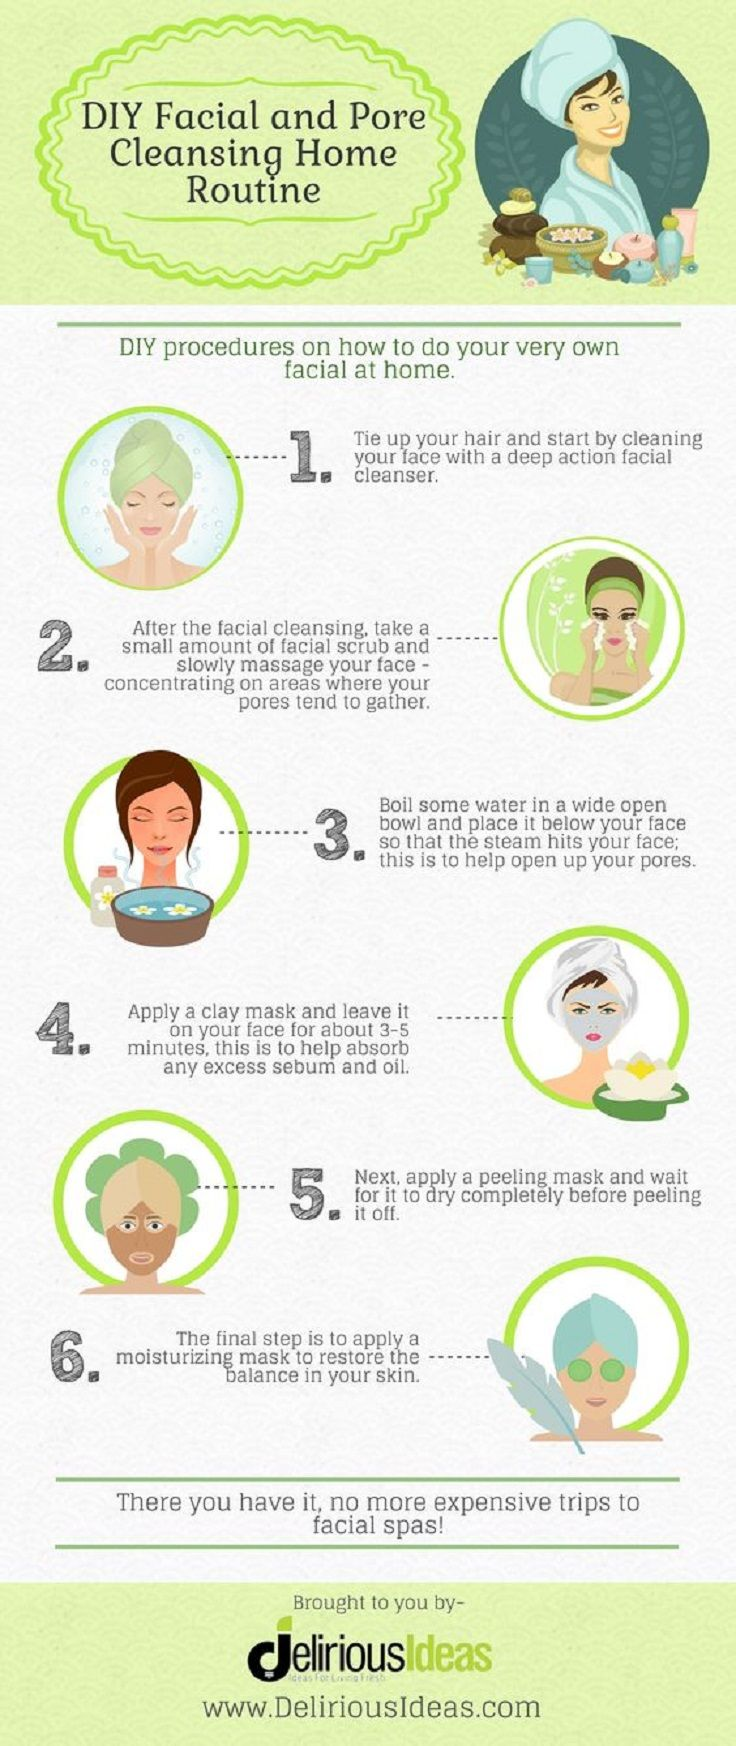 Home facial routine